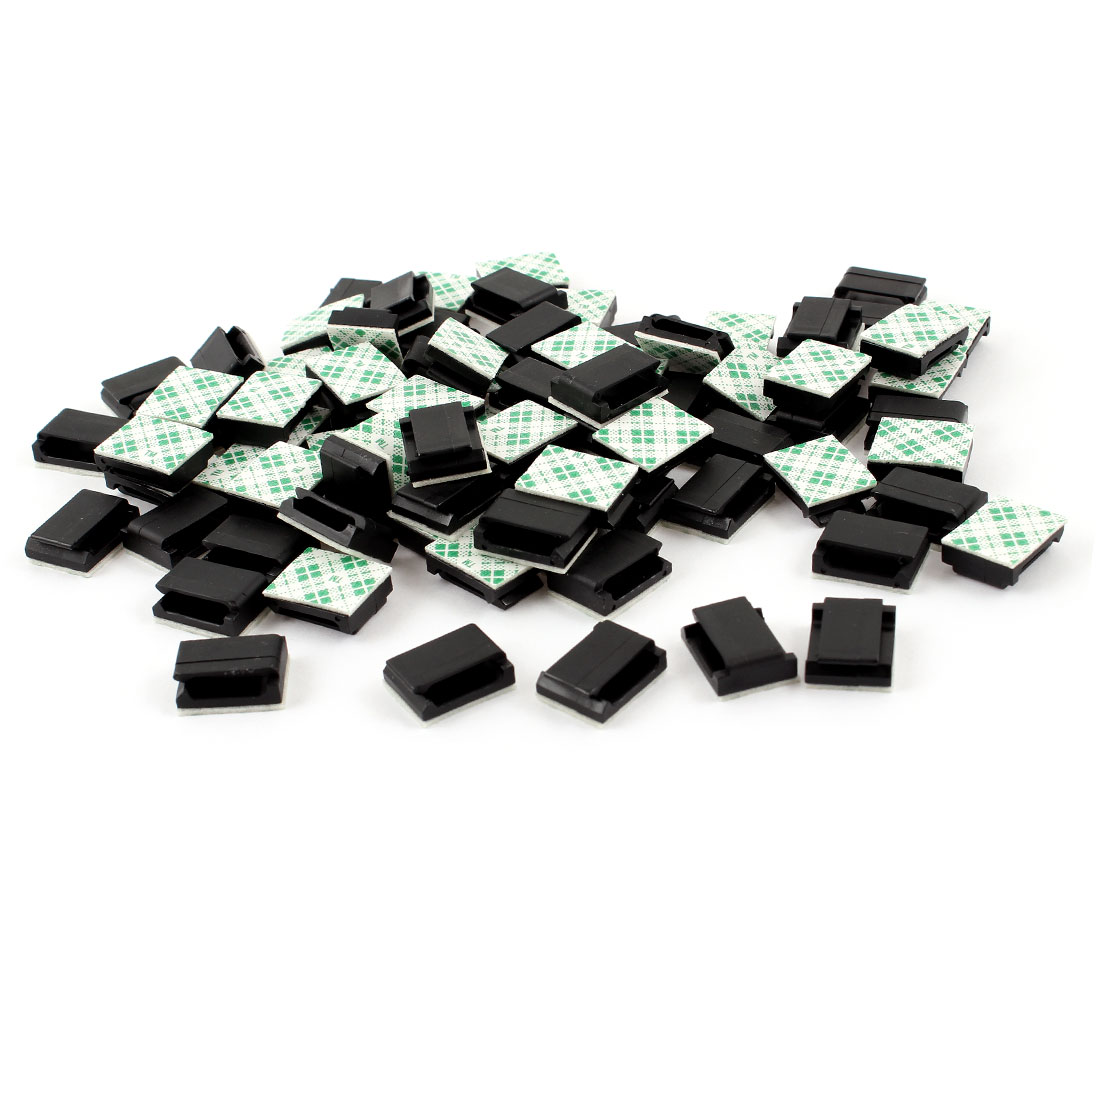 16mm x 13mm x 6mm 11mm Cable Width Self Adhesive Cable Tie Fixed Bases 100 Pcs